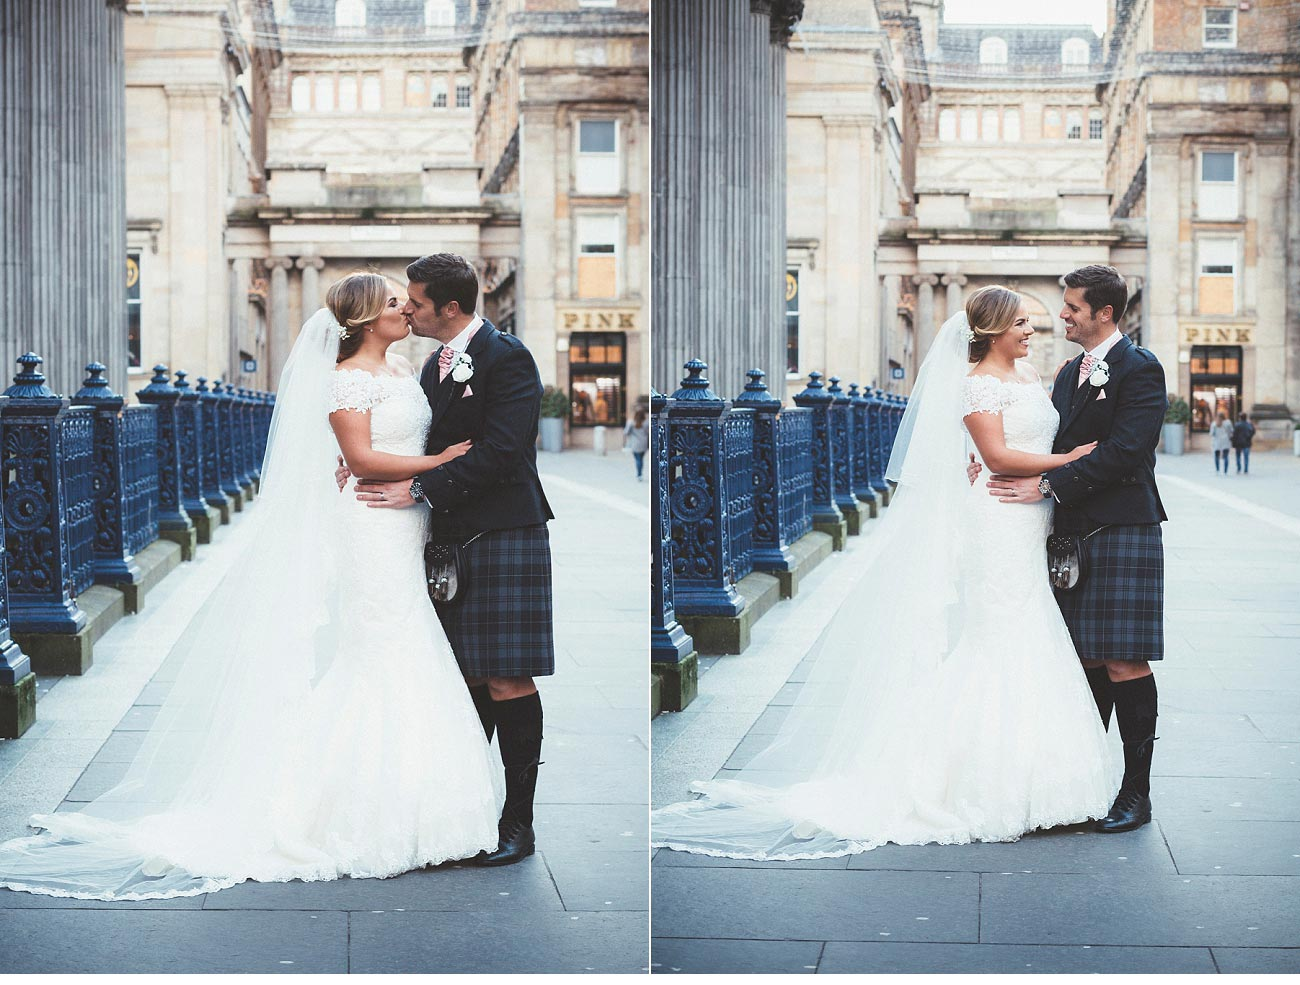 wedding photographer glasgow 29 Royal Exchange square 0043